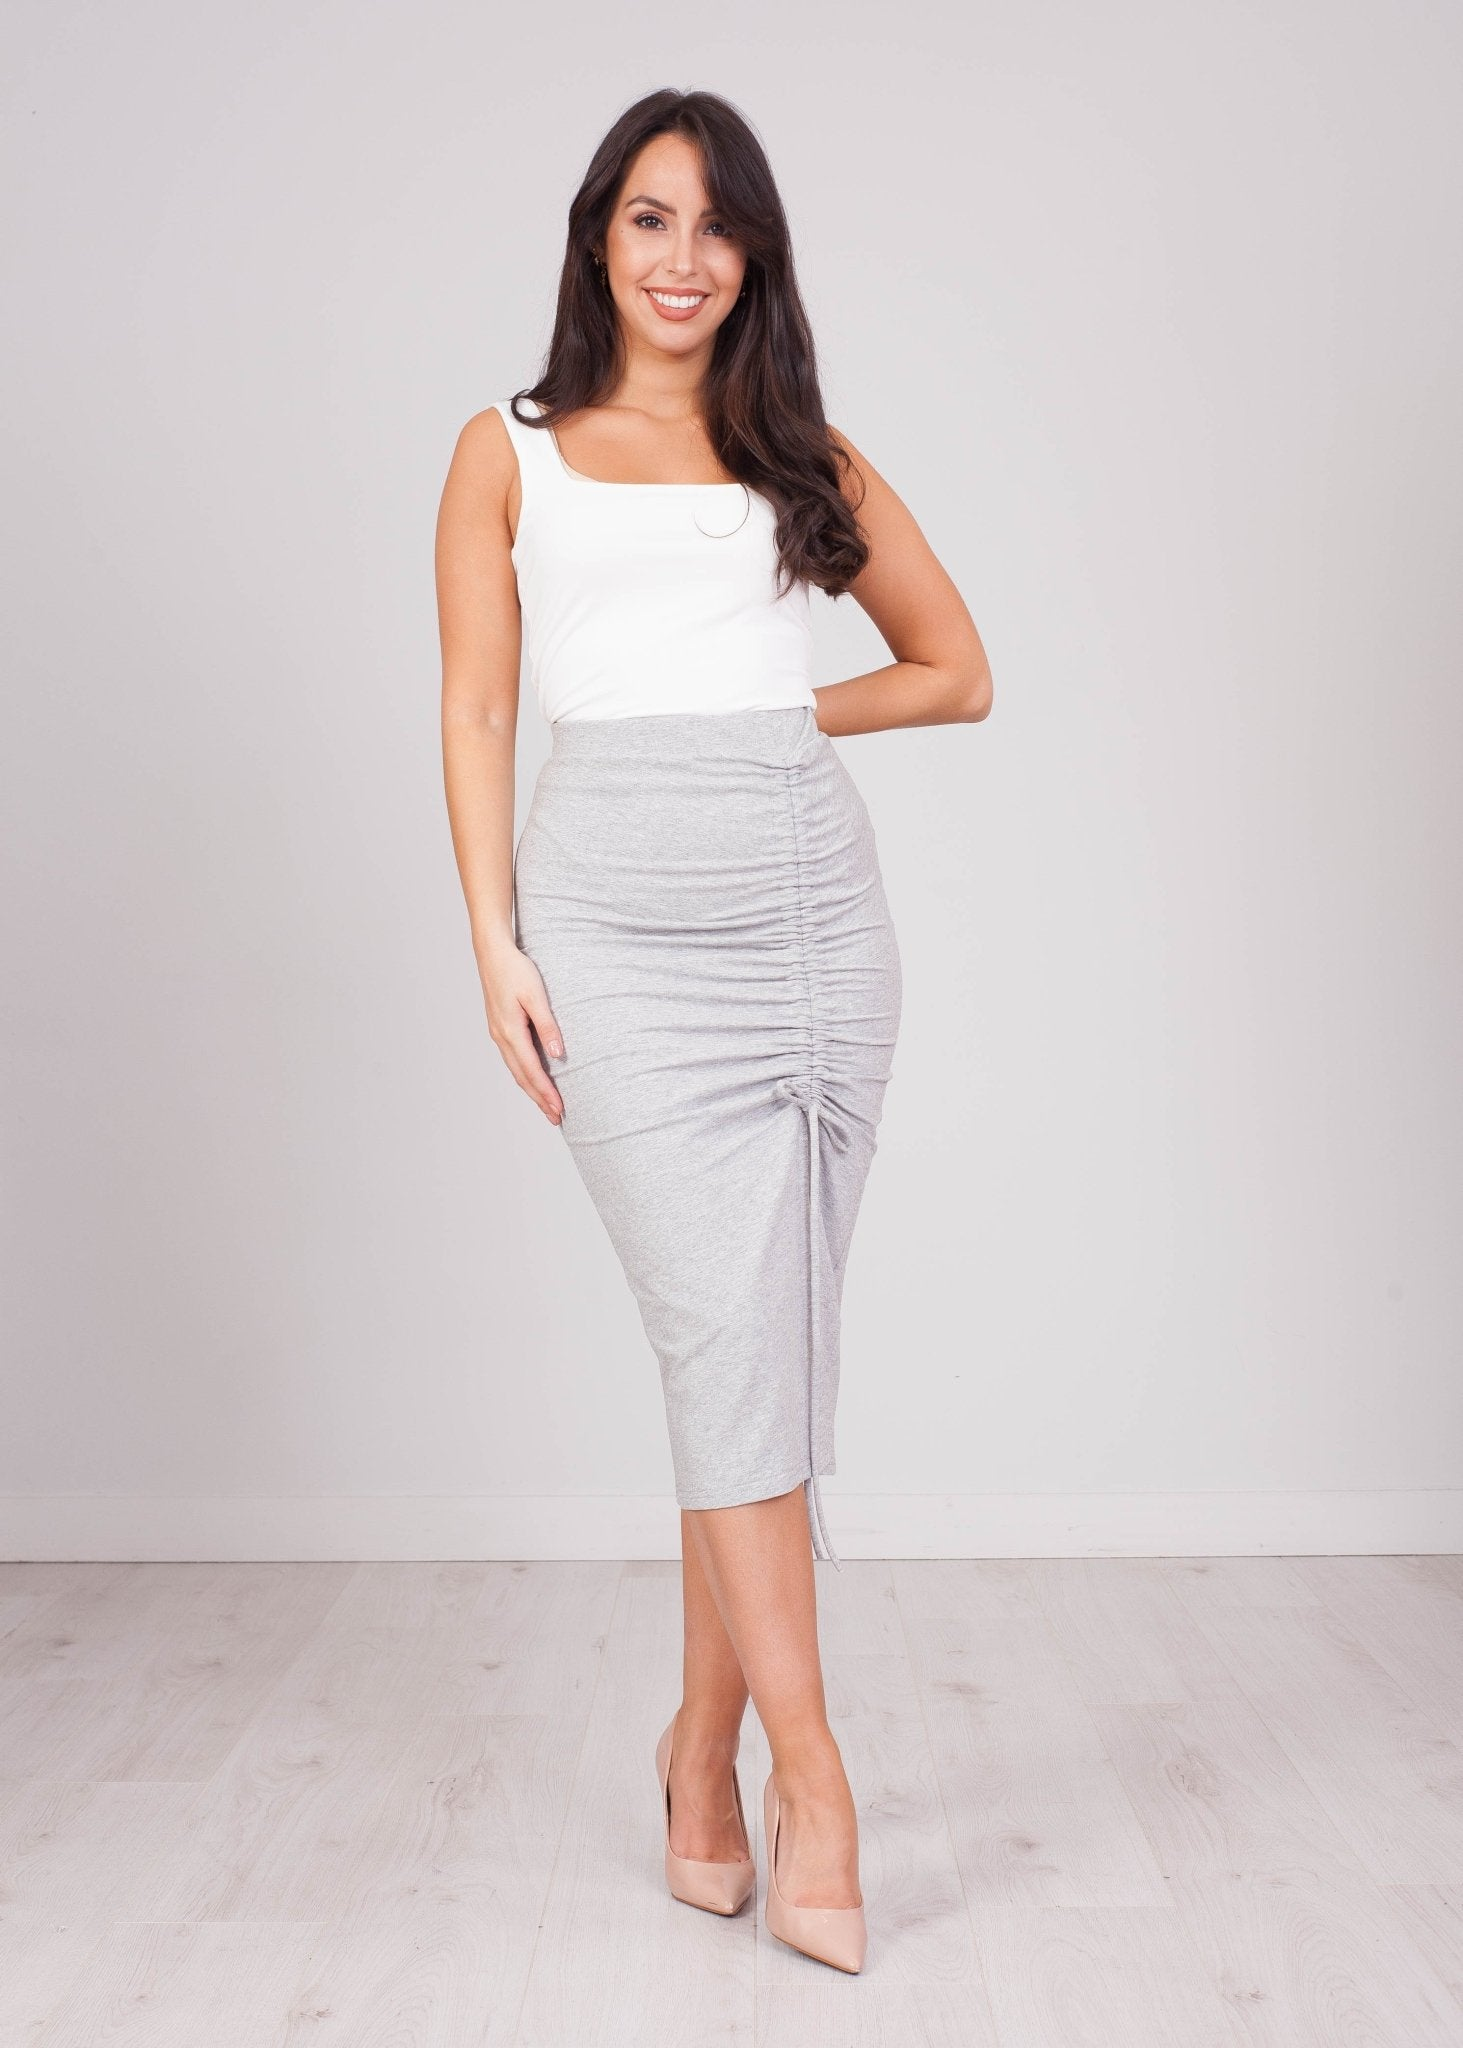 Emilia Grey Jersey Ruched Skirt - The Walk in Wardrobe